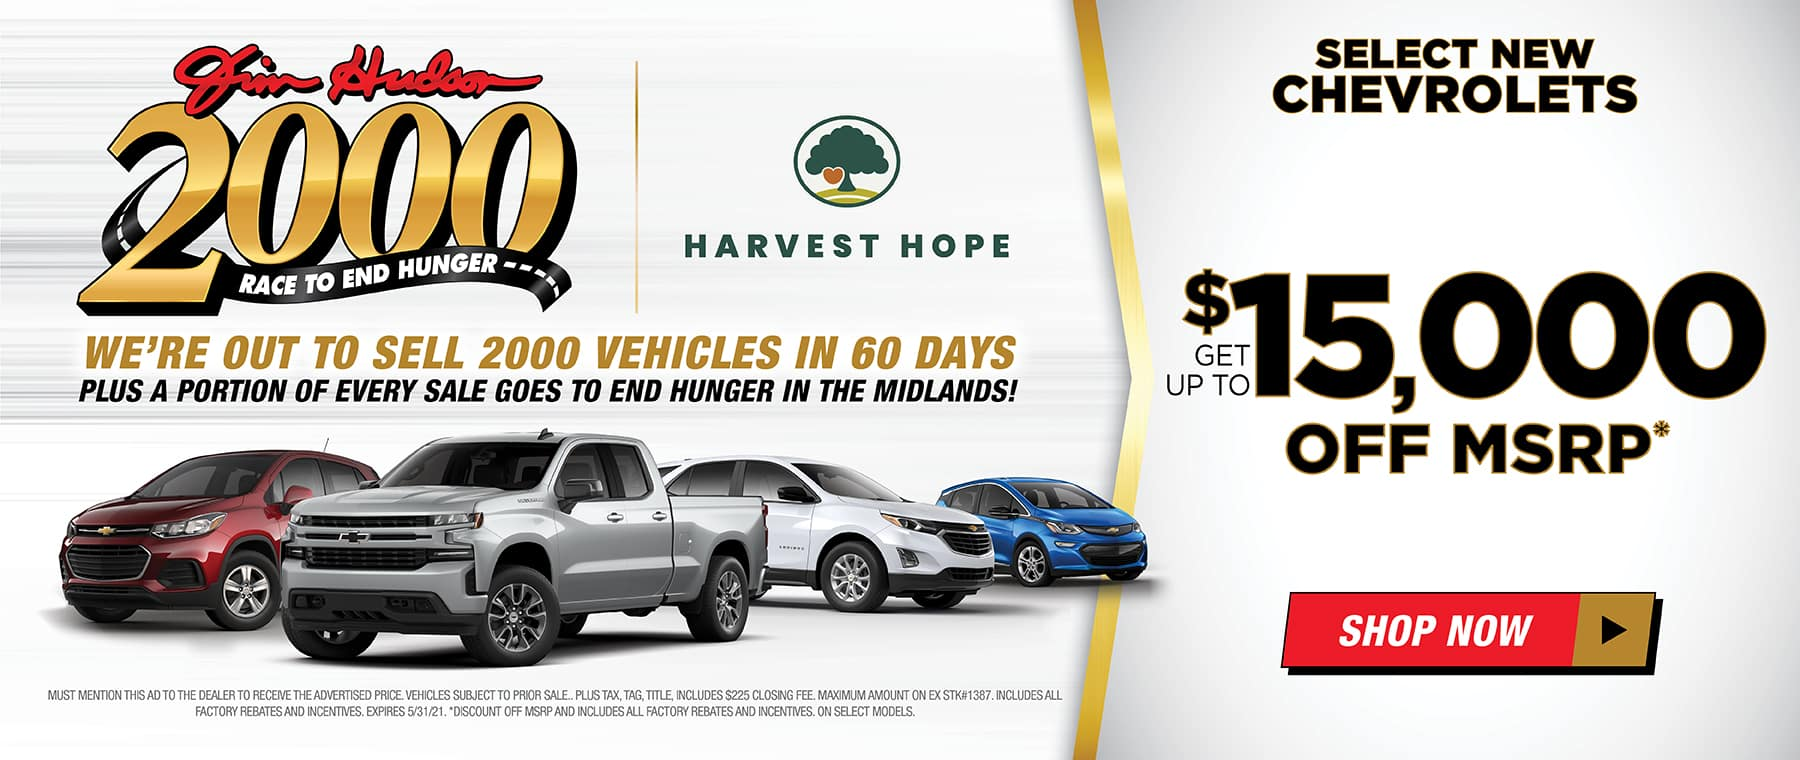 JHC MONTHLY CAR OFFER